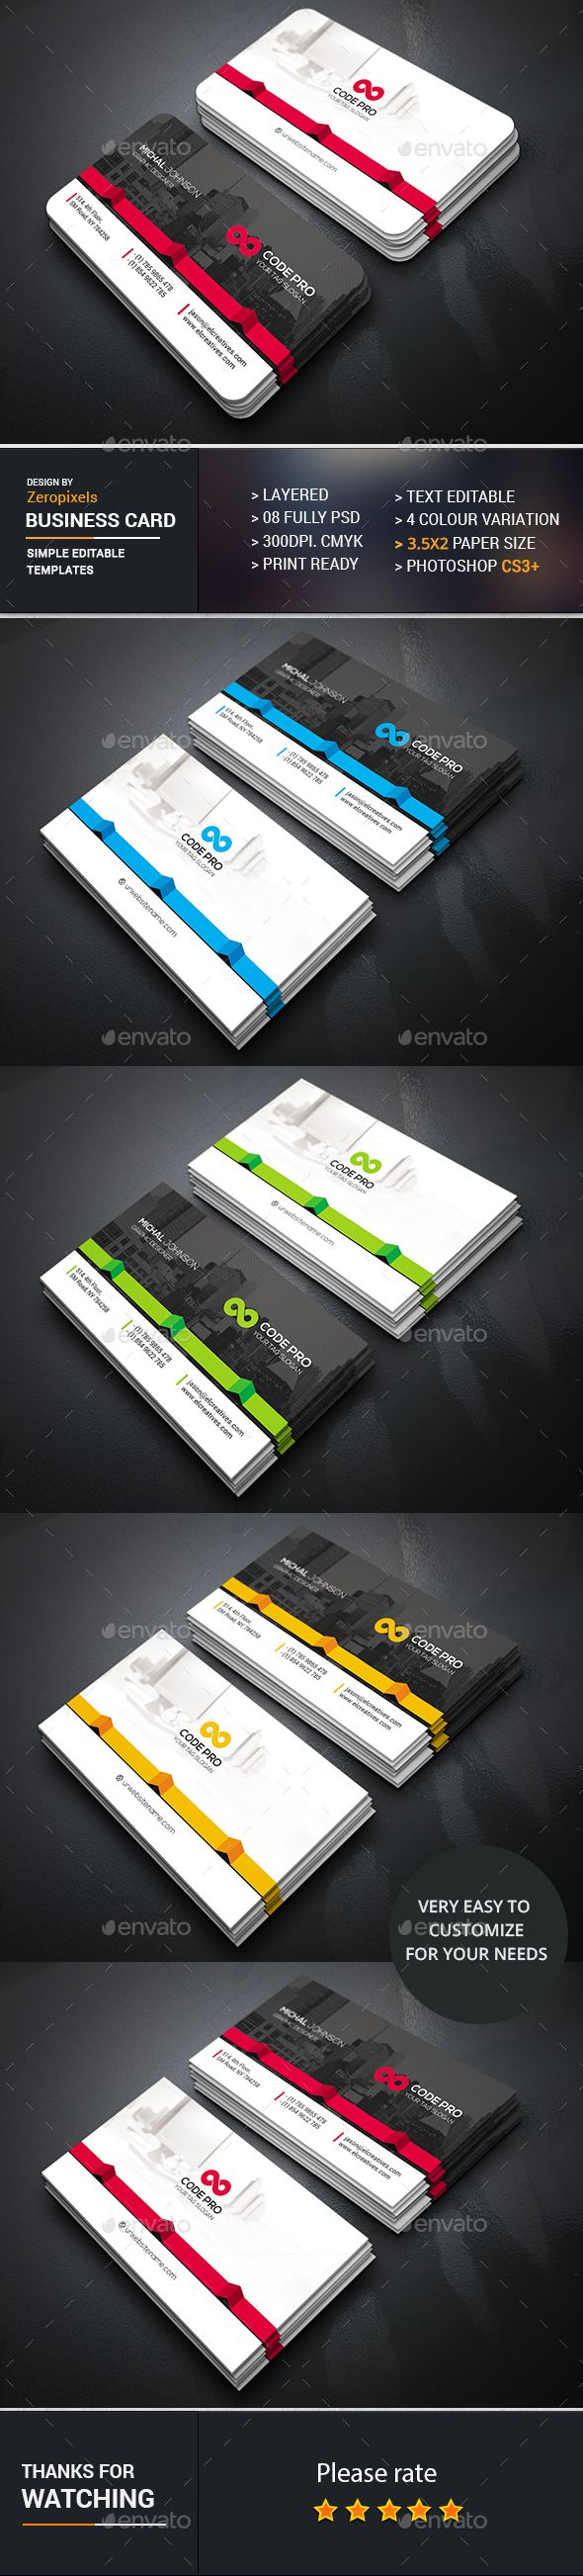 Soft business card template psd download here httpsgraphicriver soft business card template psd download here httpsgraphicriver reheart Choice Image